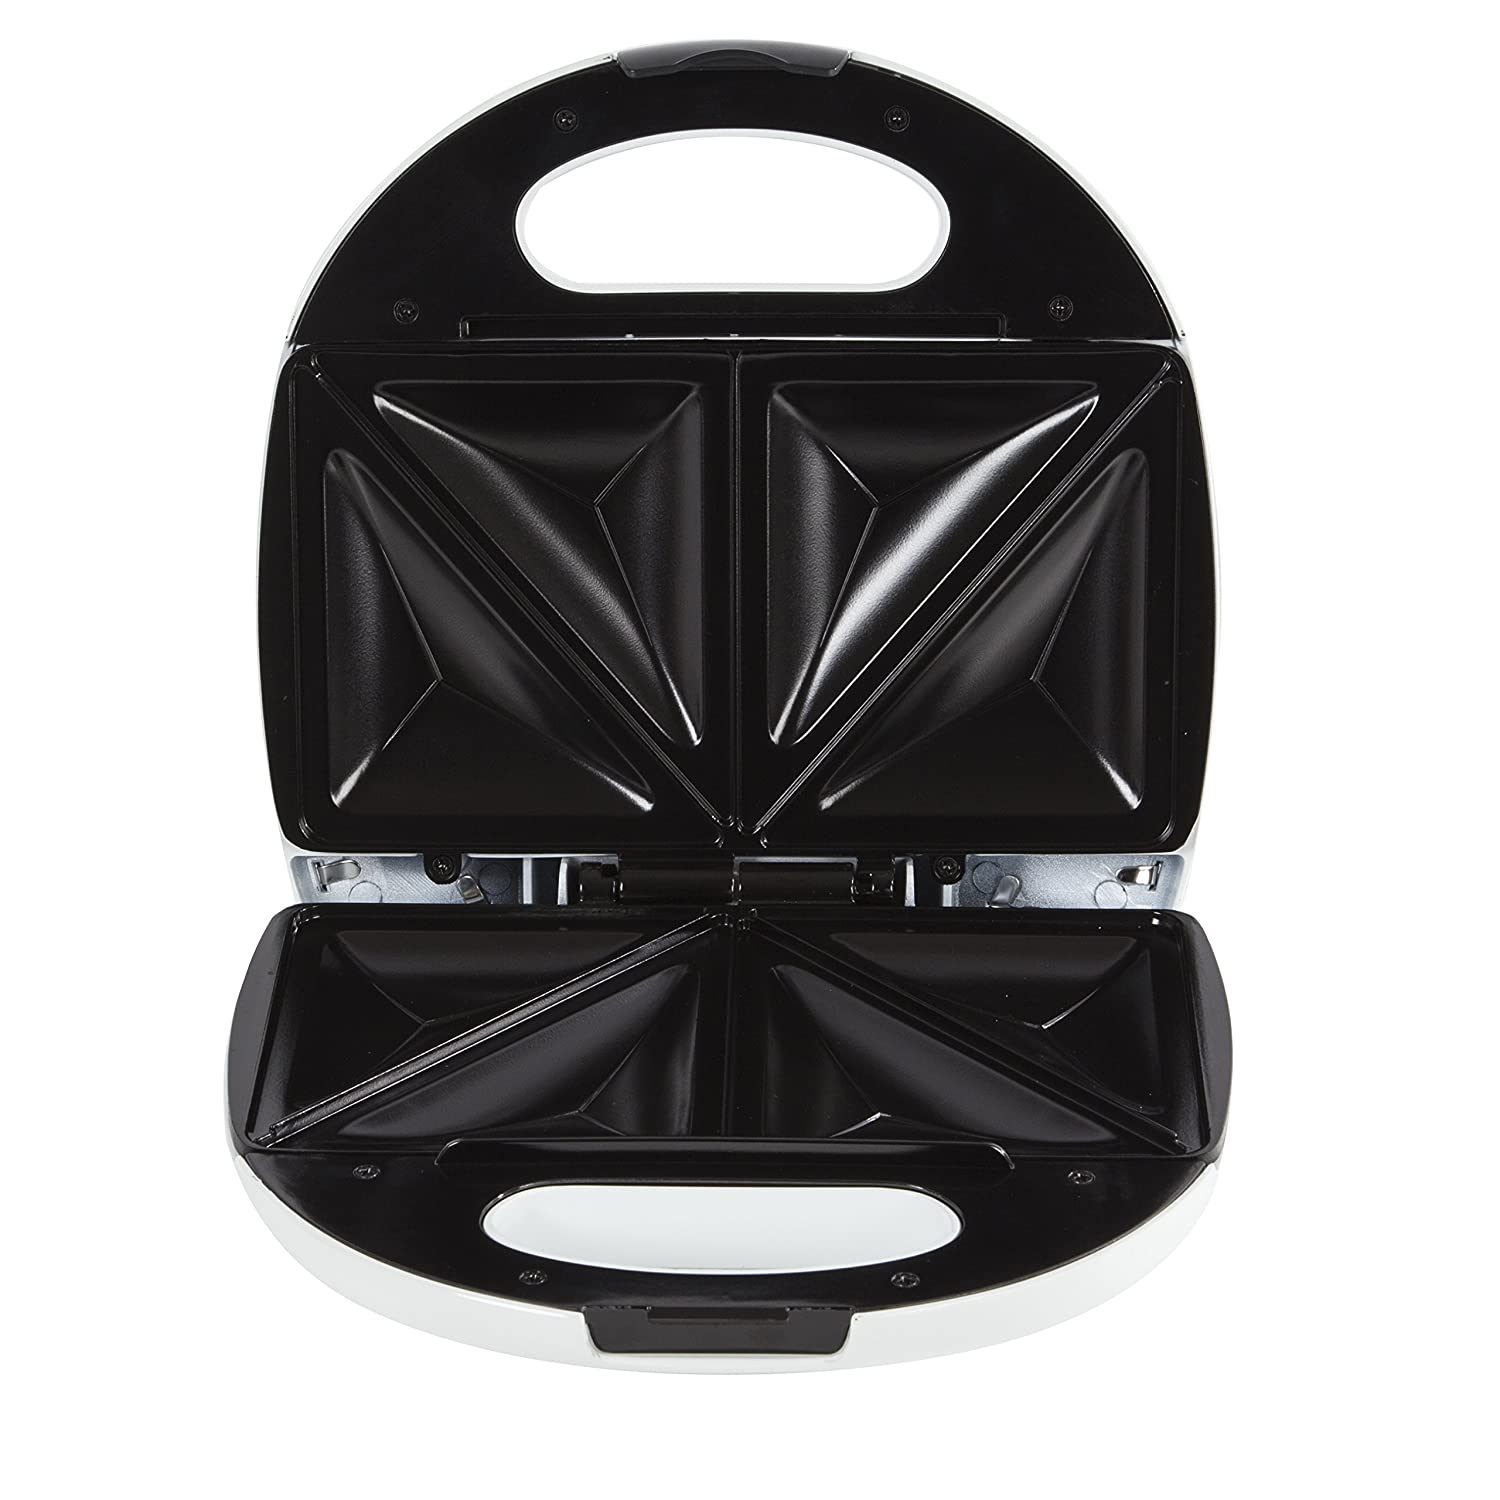 appliances deluxe sandwich toaster compact slice detail sst black toasters sunbeam c